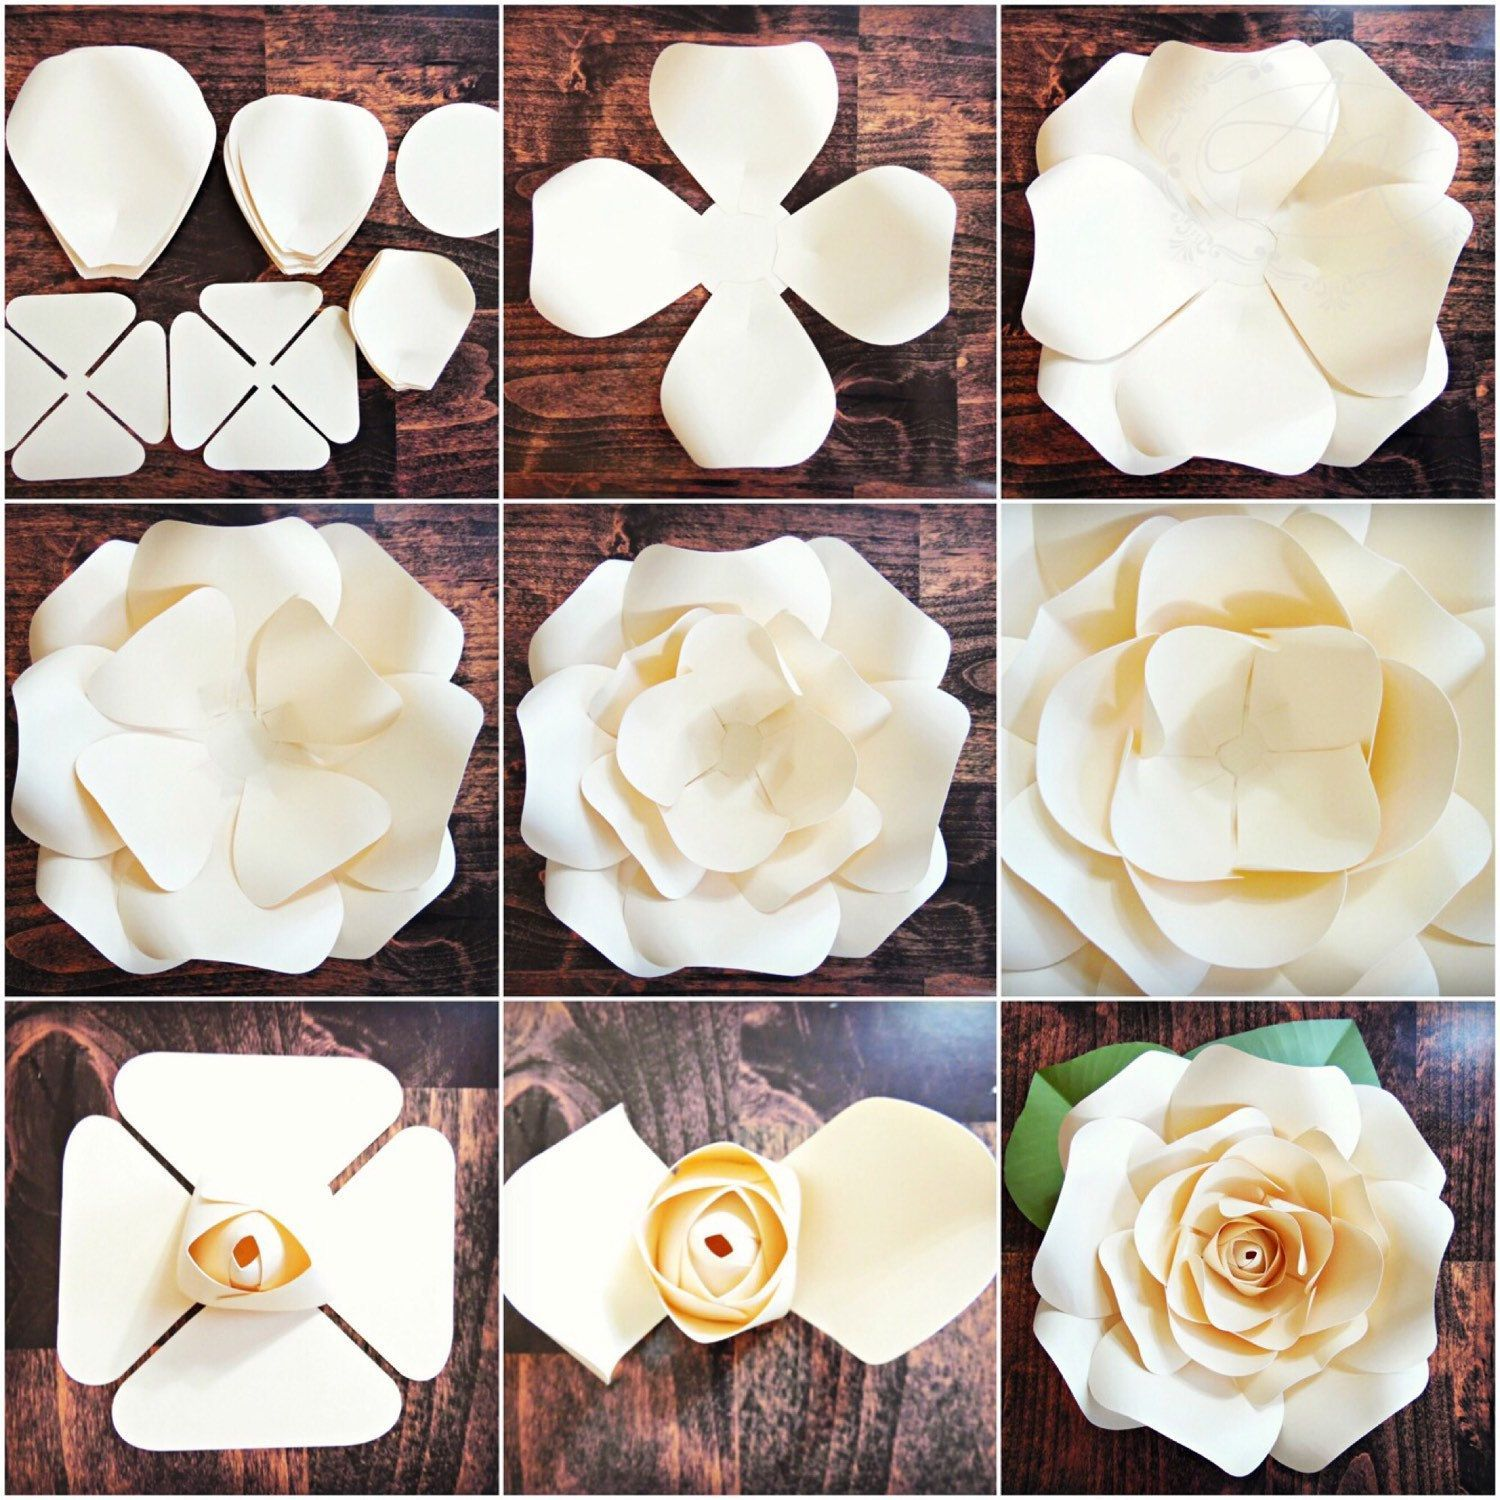 Full rose paper flower template sets Fun and easy to make  rustic